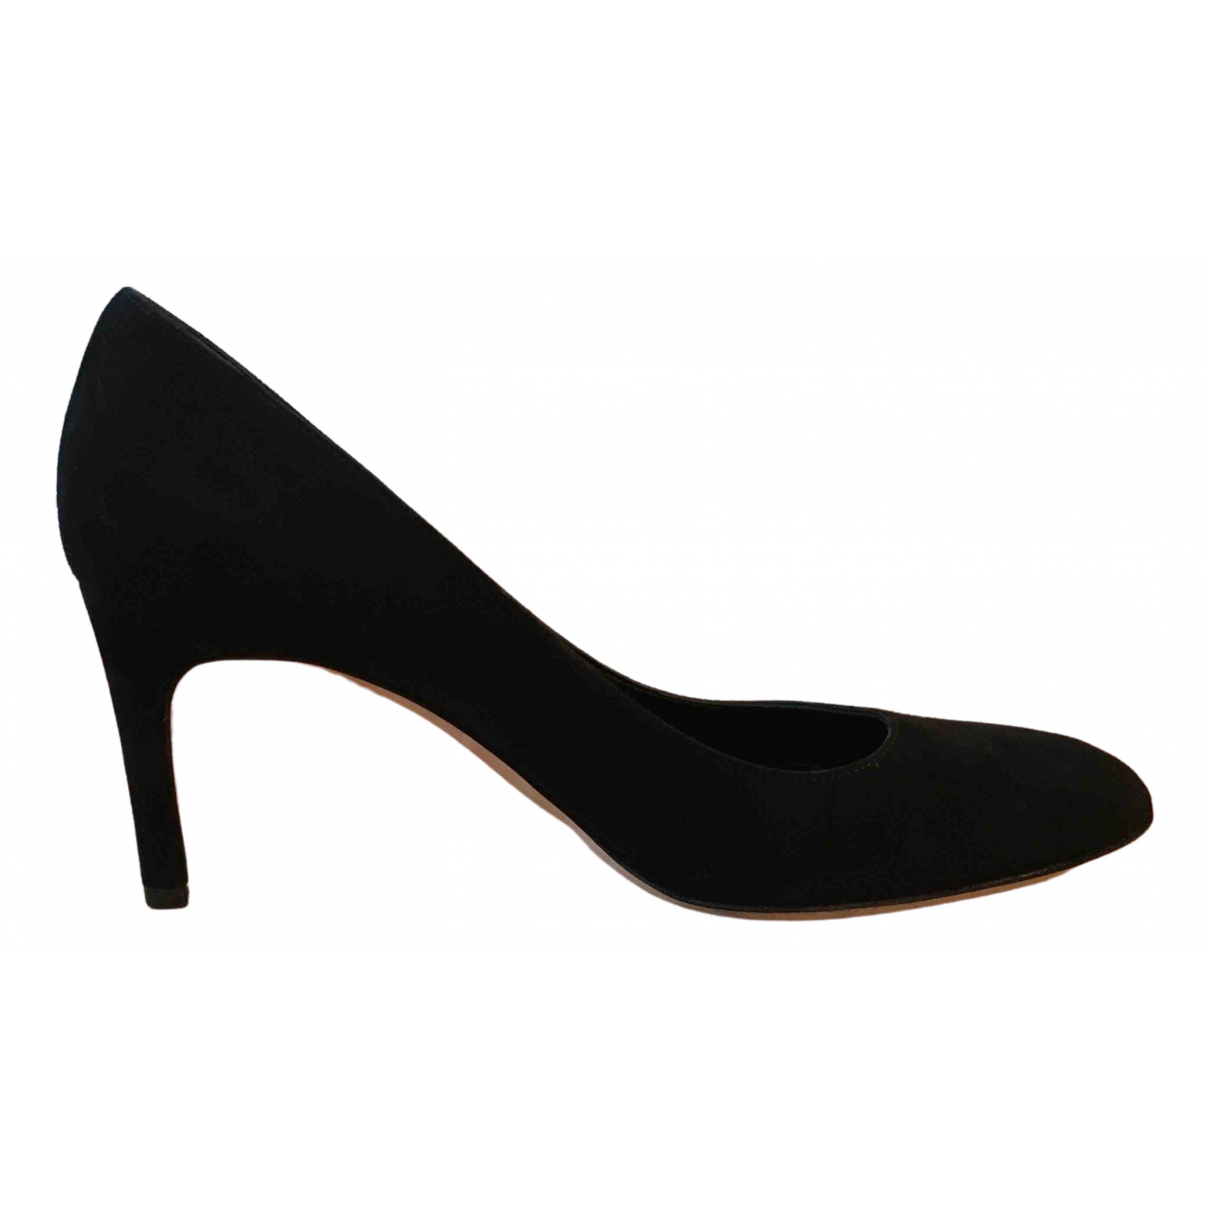 Sergio Rossi \N Black Suede Heels for Women 37 EU